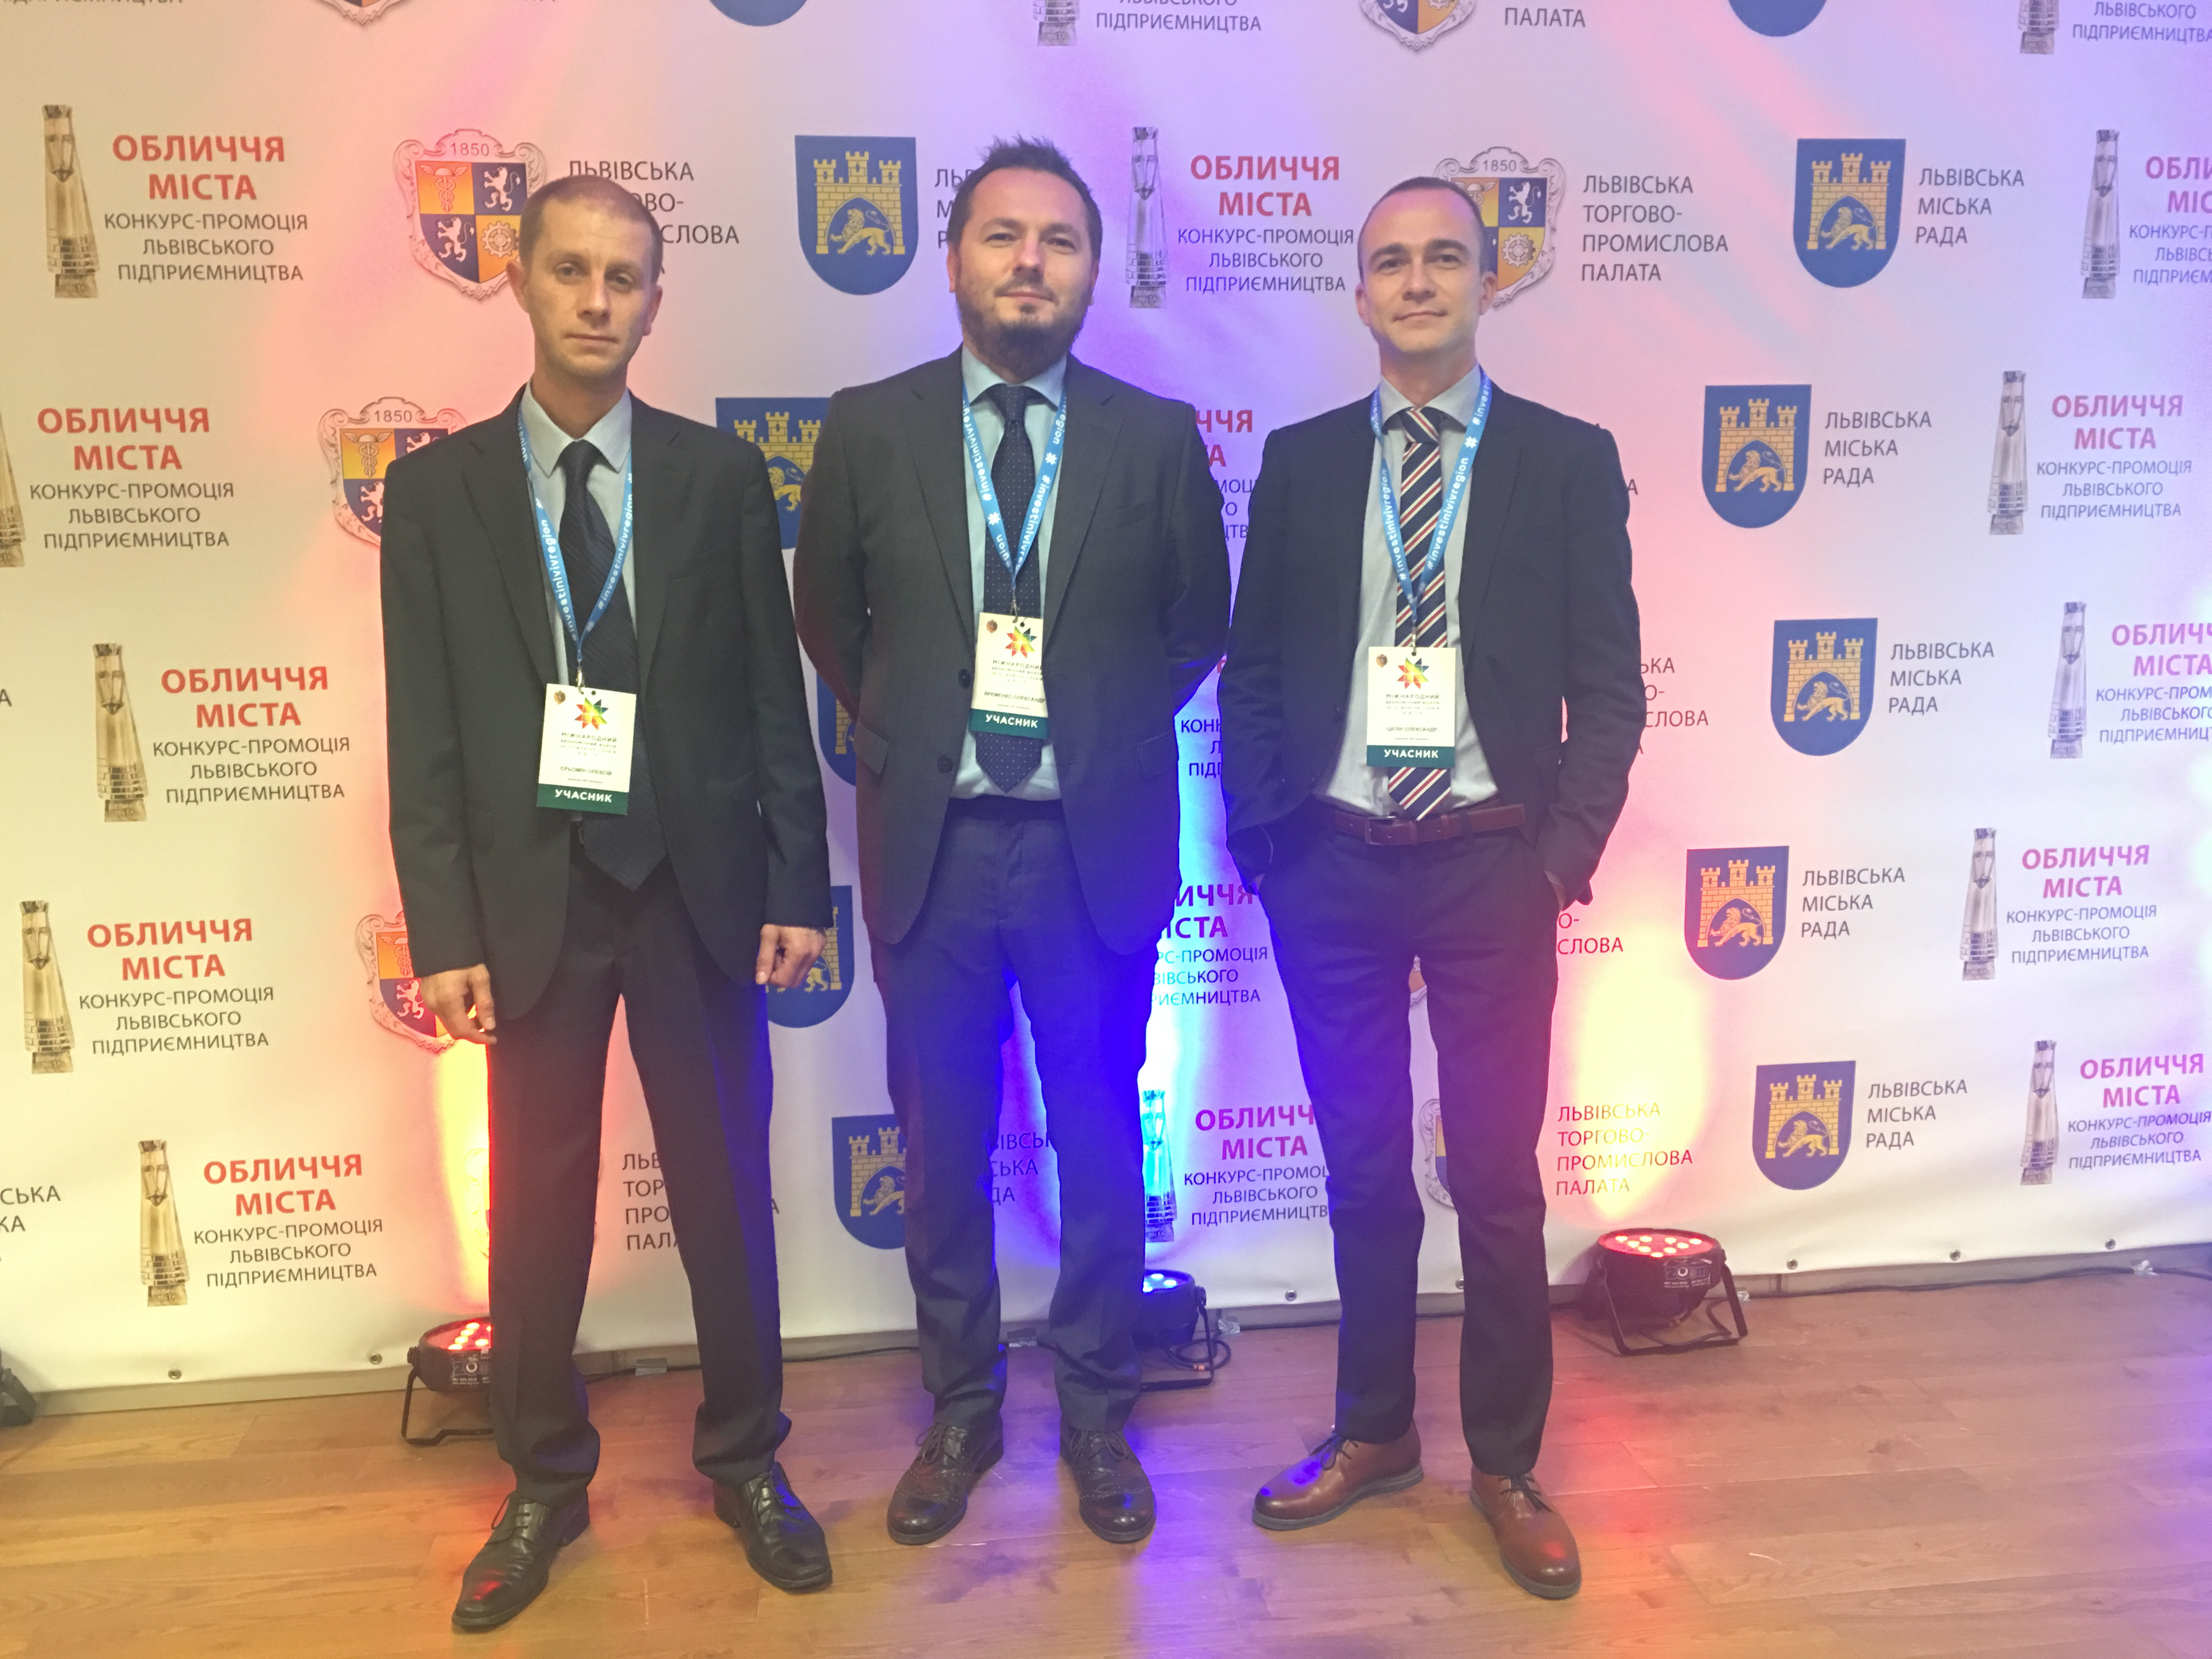 PRESS RELEASE: SP Advisors participates in the XVII Lviv International Economic Forum